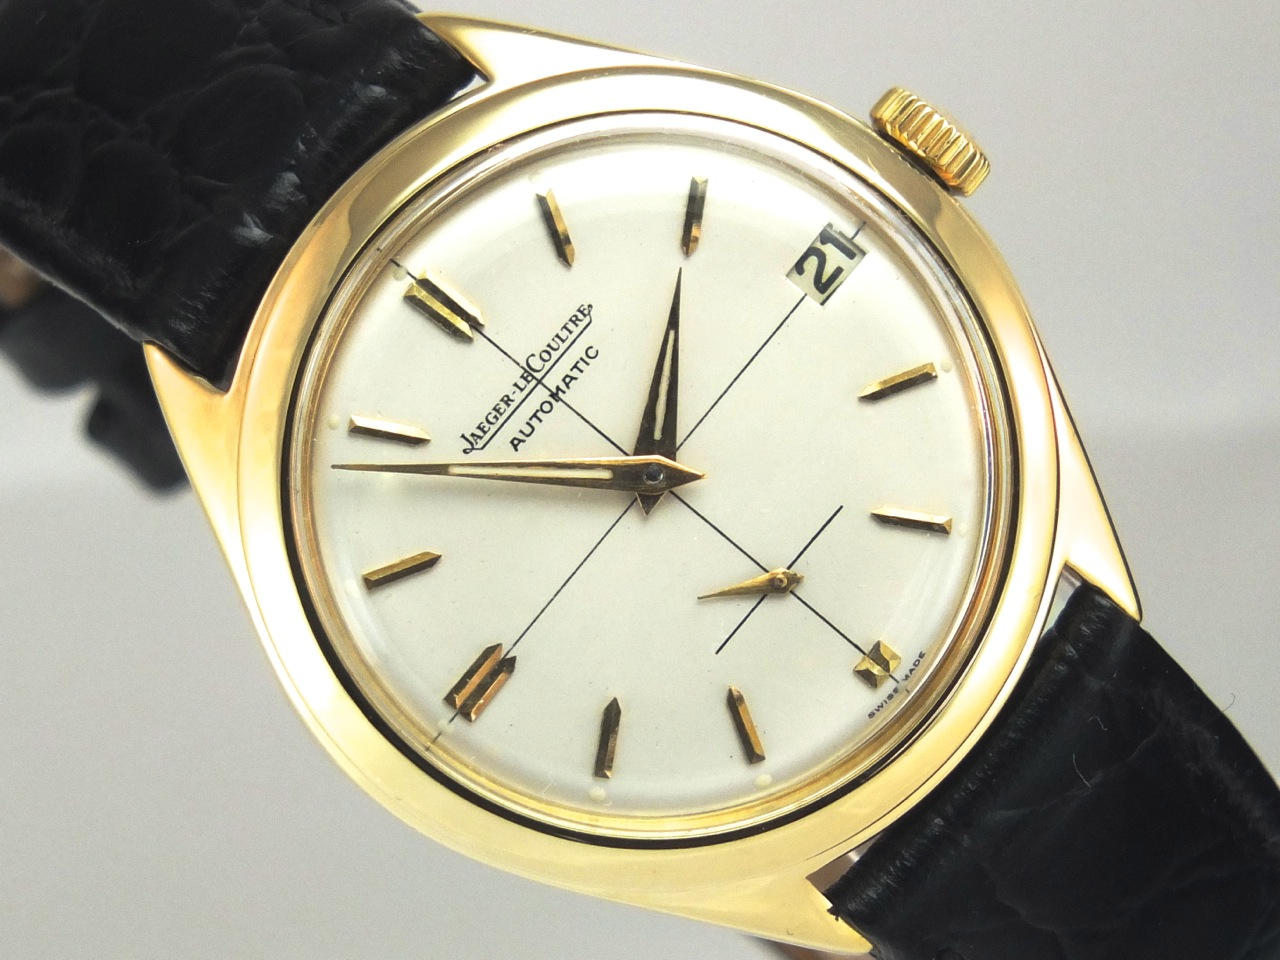 Jaeger lecoultre 18k automatic 1957 vintage gold watches for Vintage gold watch